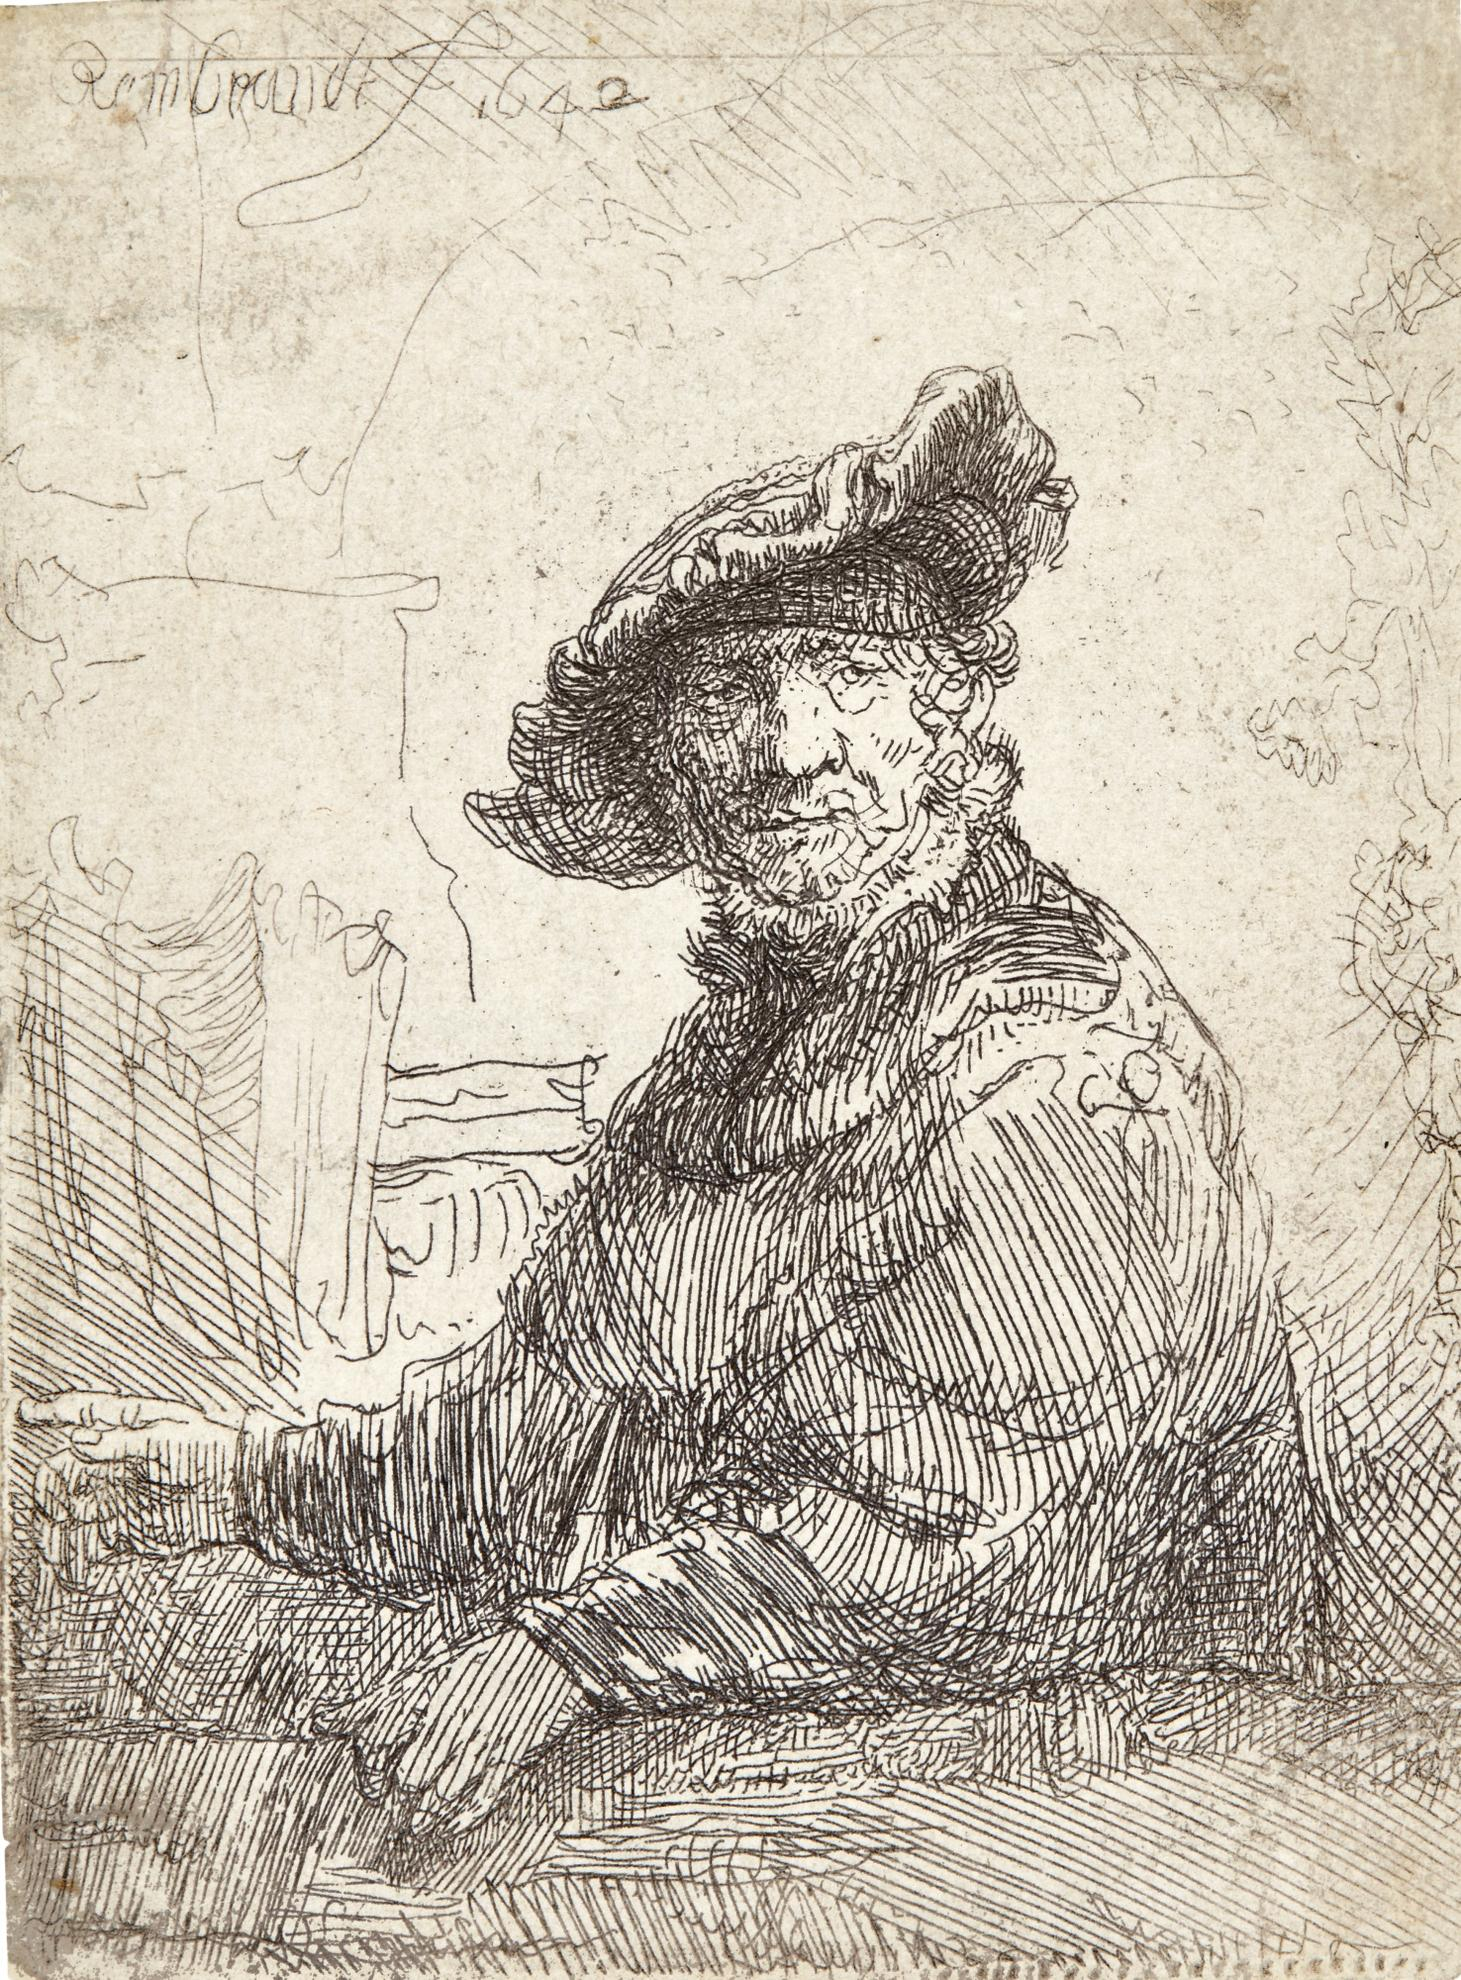 Rembrandt van Rijn-Man In An Arbor (B., Holl. 257; New Holl. 208; H. 194)-1642